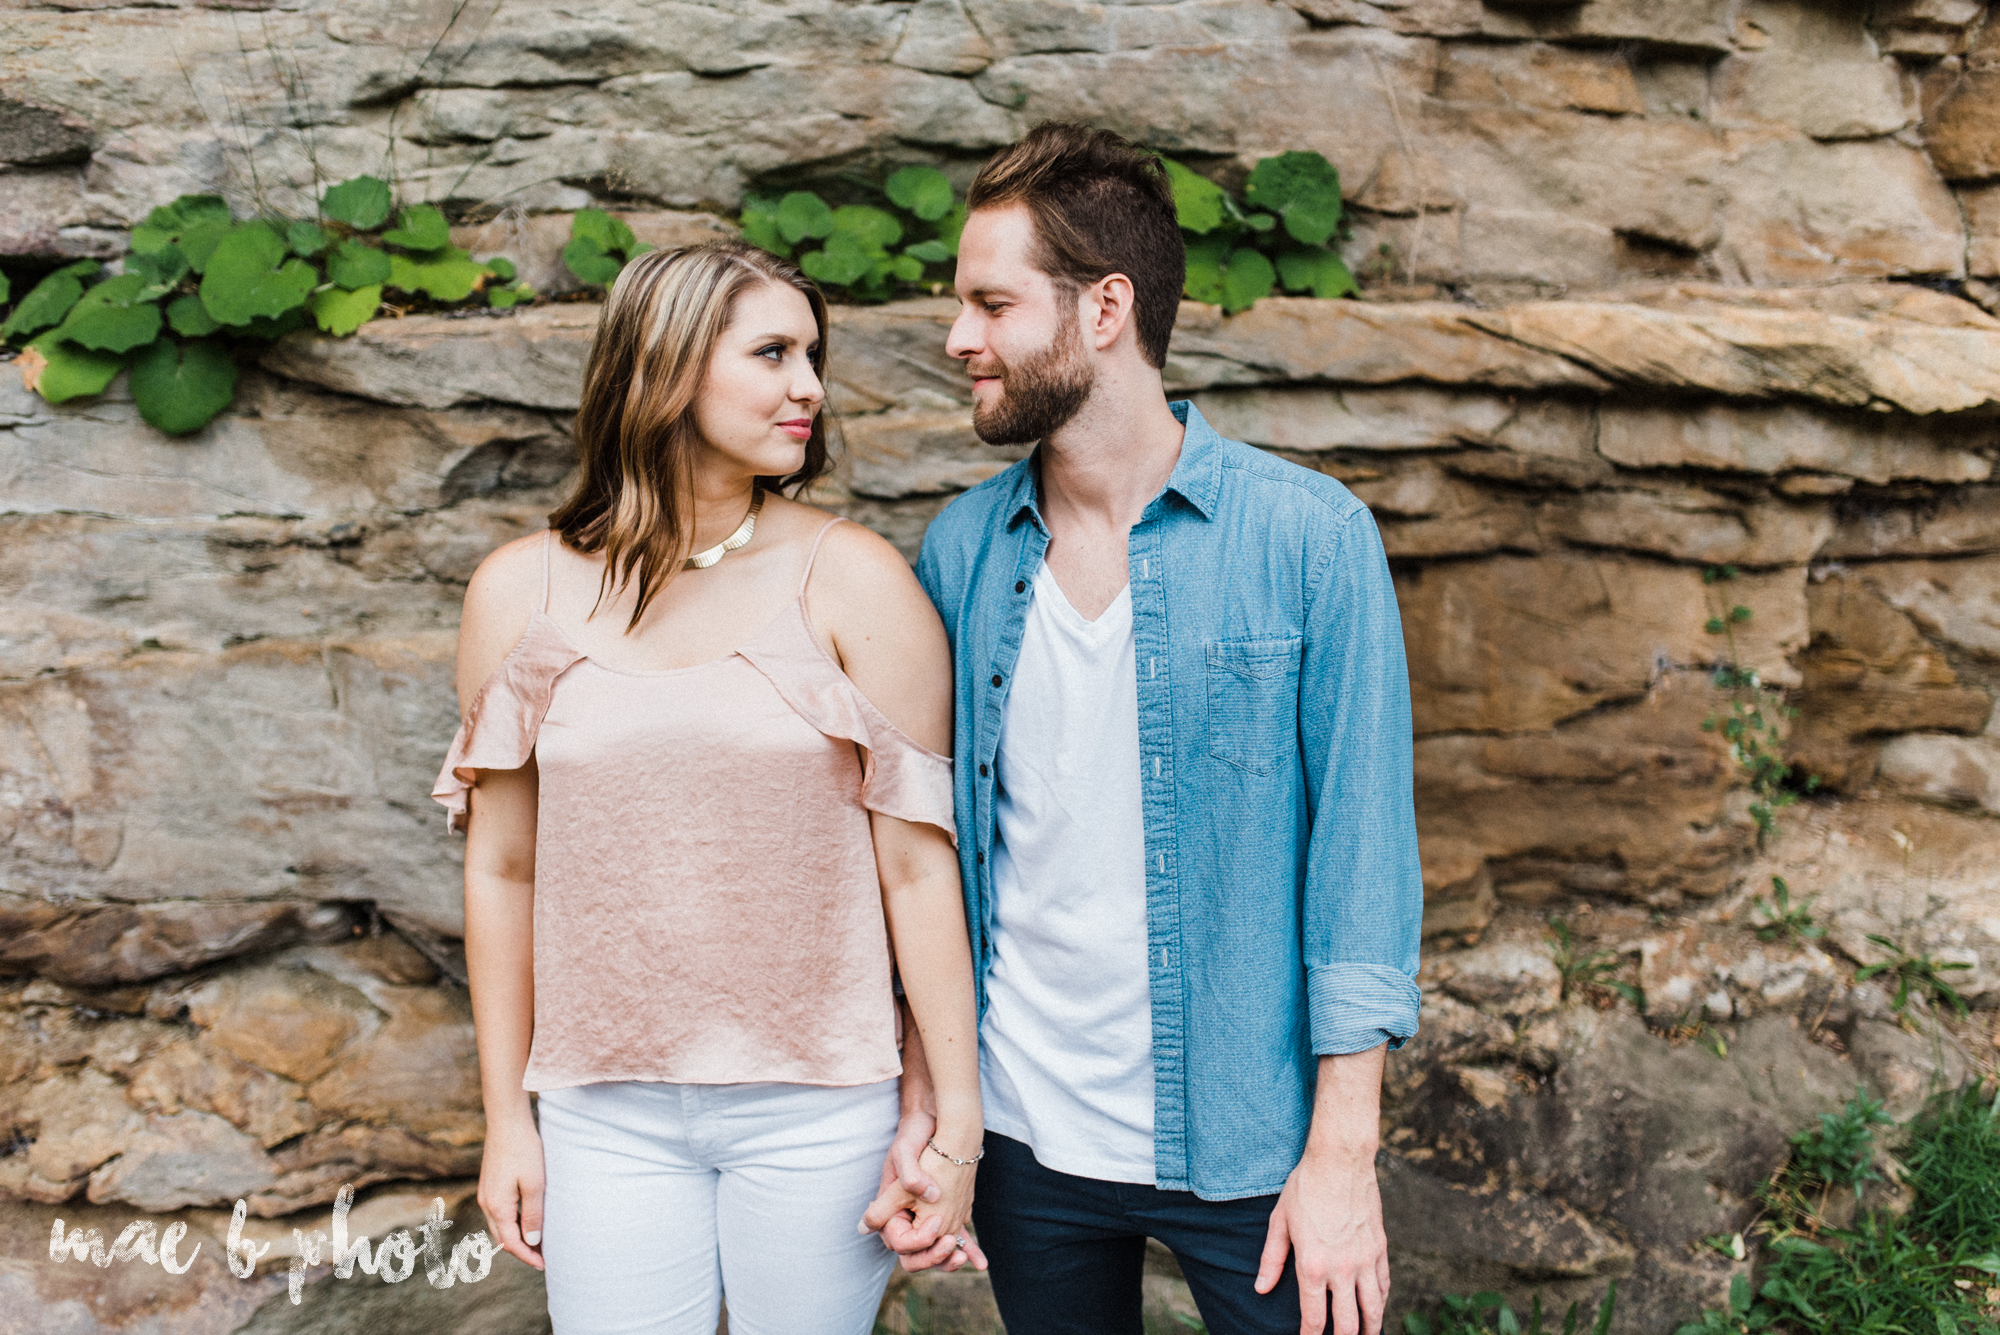 lauren and steve's summer engagement session at the rose gardens and lanterman's mill in mill creek park in youngstown ohio photographed by youngstown wedding photographer mae b photo-37.jpg